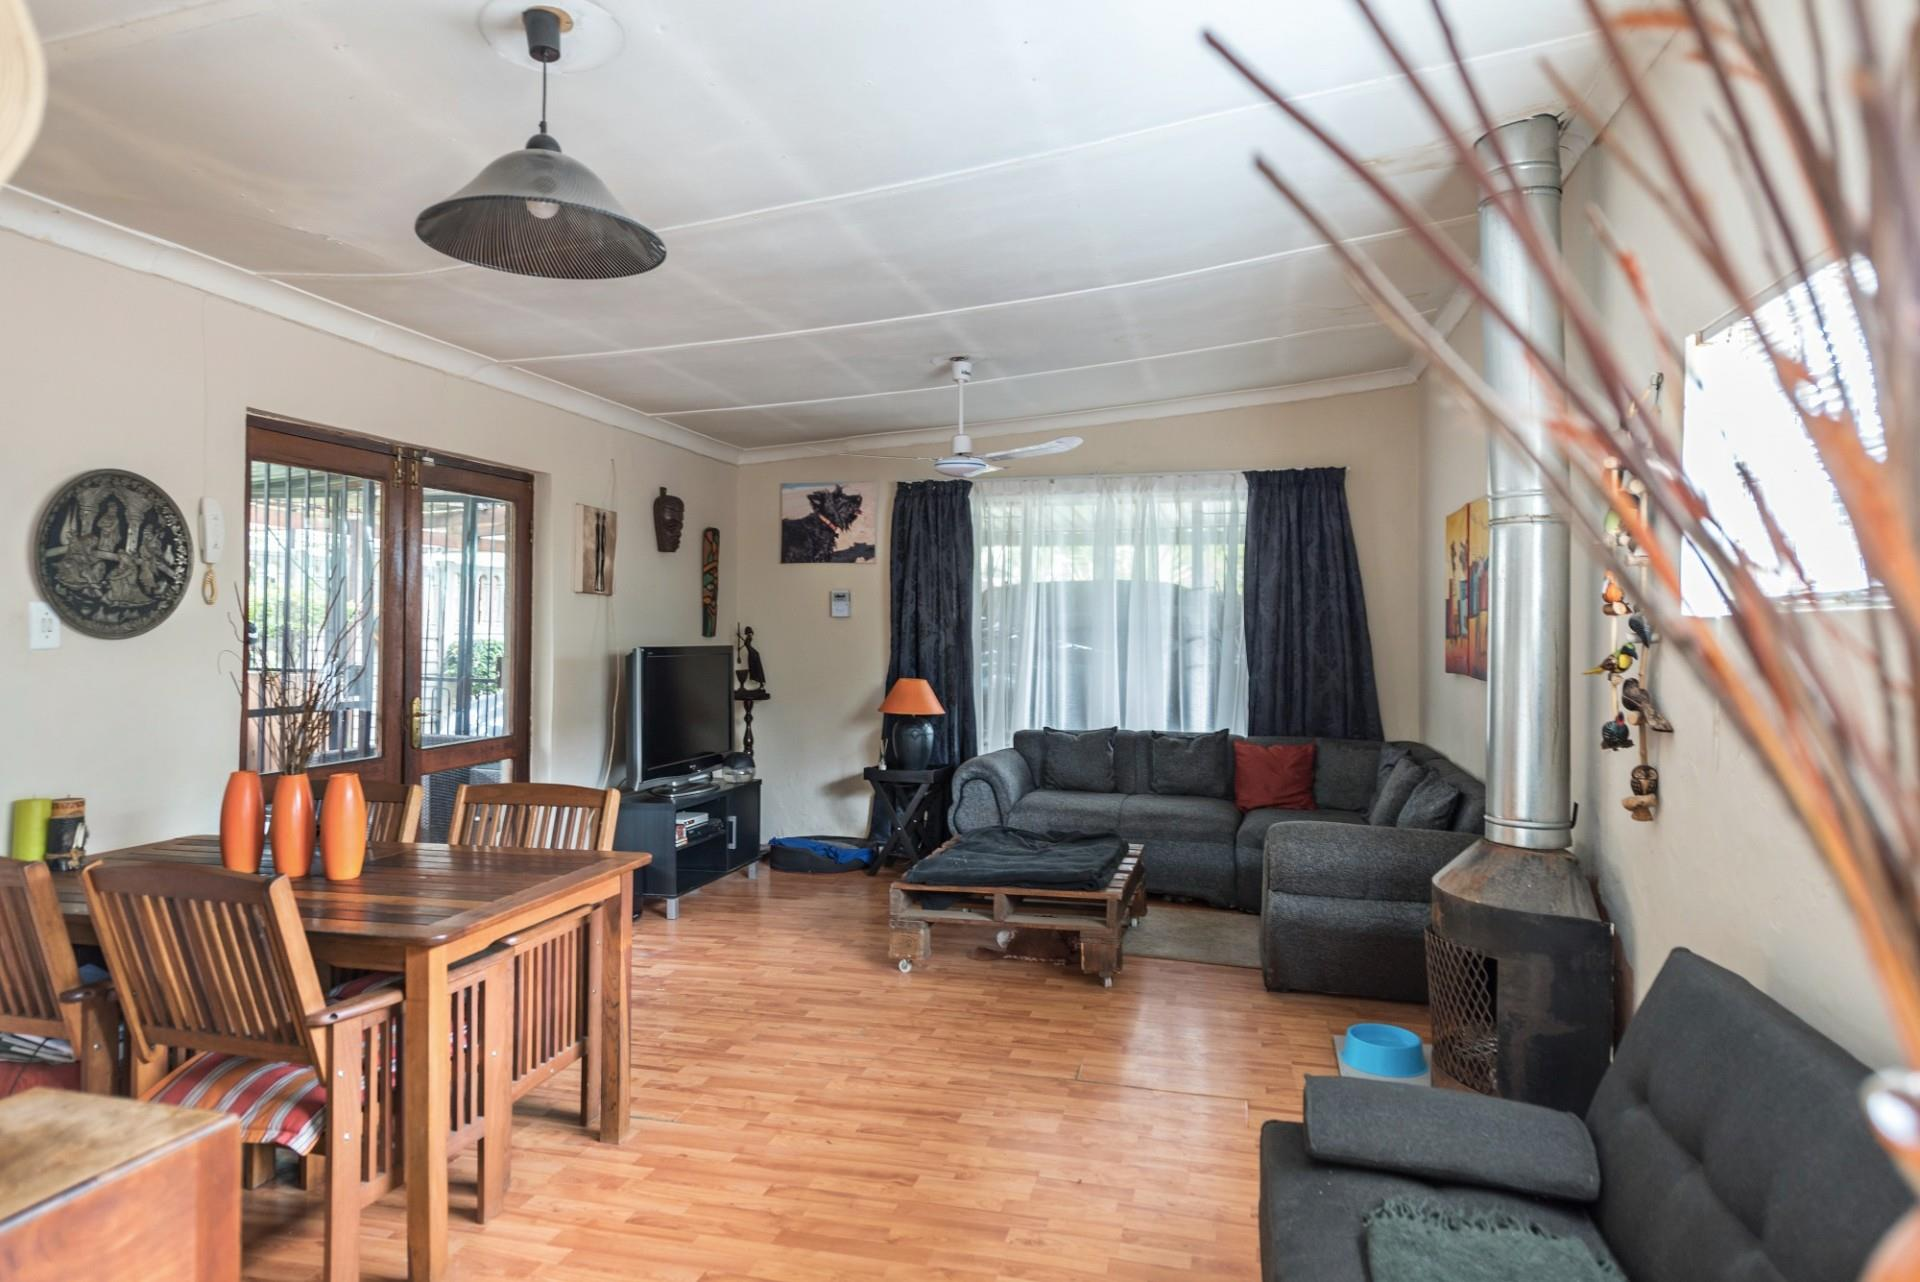 4 Bedroom House For Sale in Edenvale Central